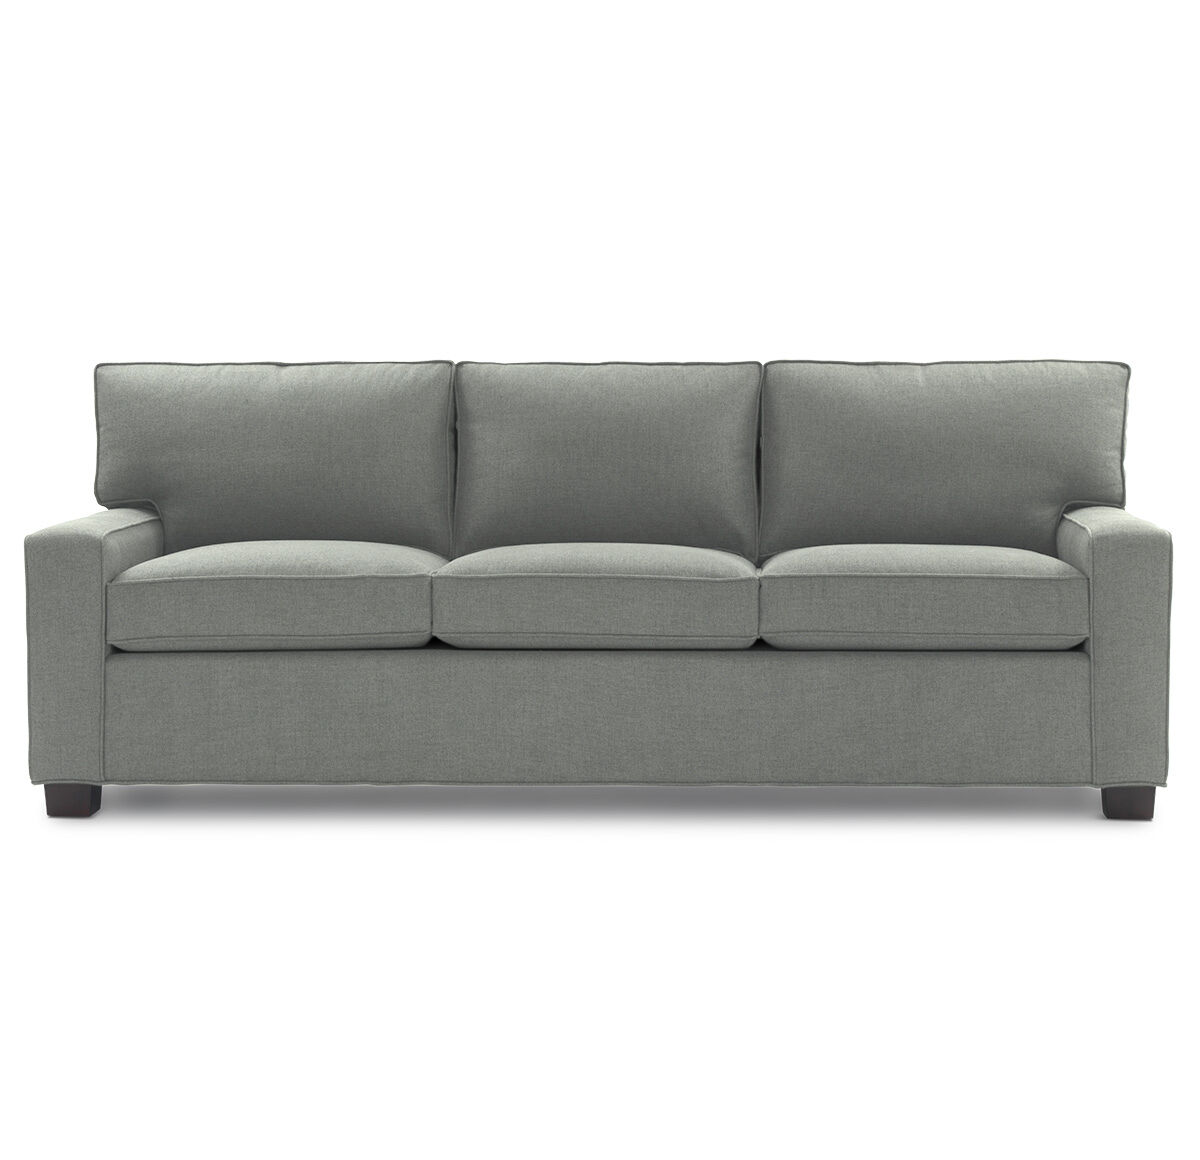 alex ii 89 sofa slipcover dfs supreme leather reviews mgbw whitley thesofa